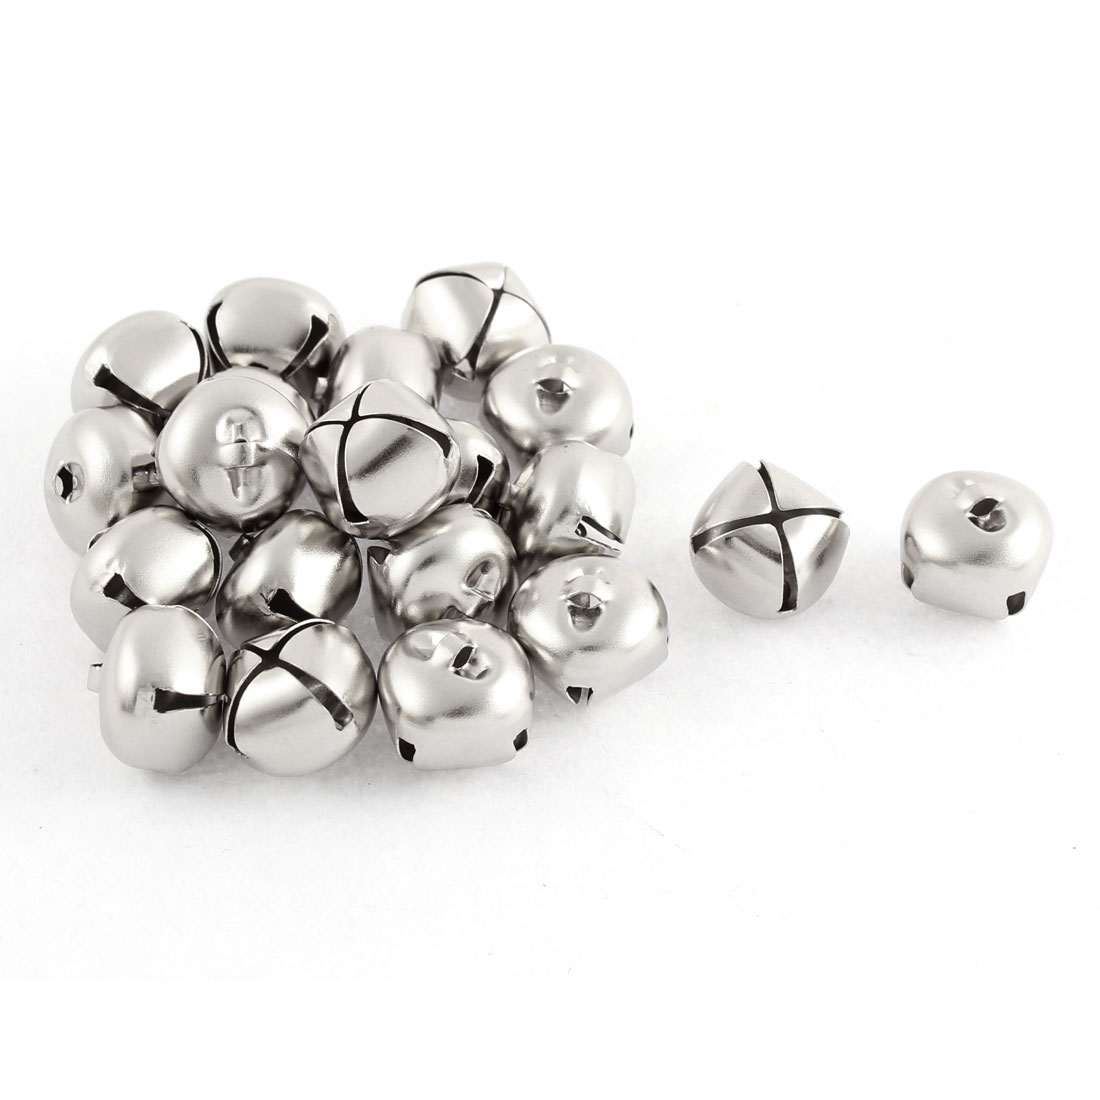 Metal Hollow Out Round Christmas Jingle Bells 0.24 Inch Sliver Tone 20pcs